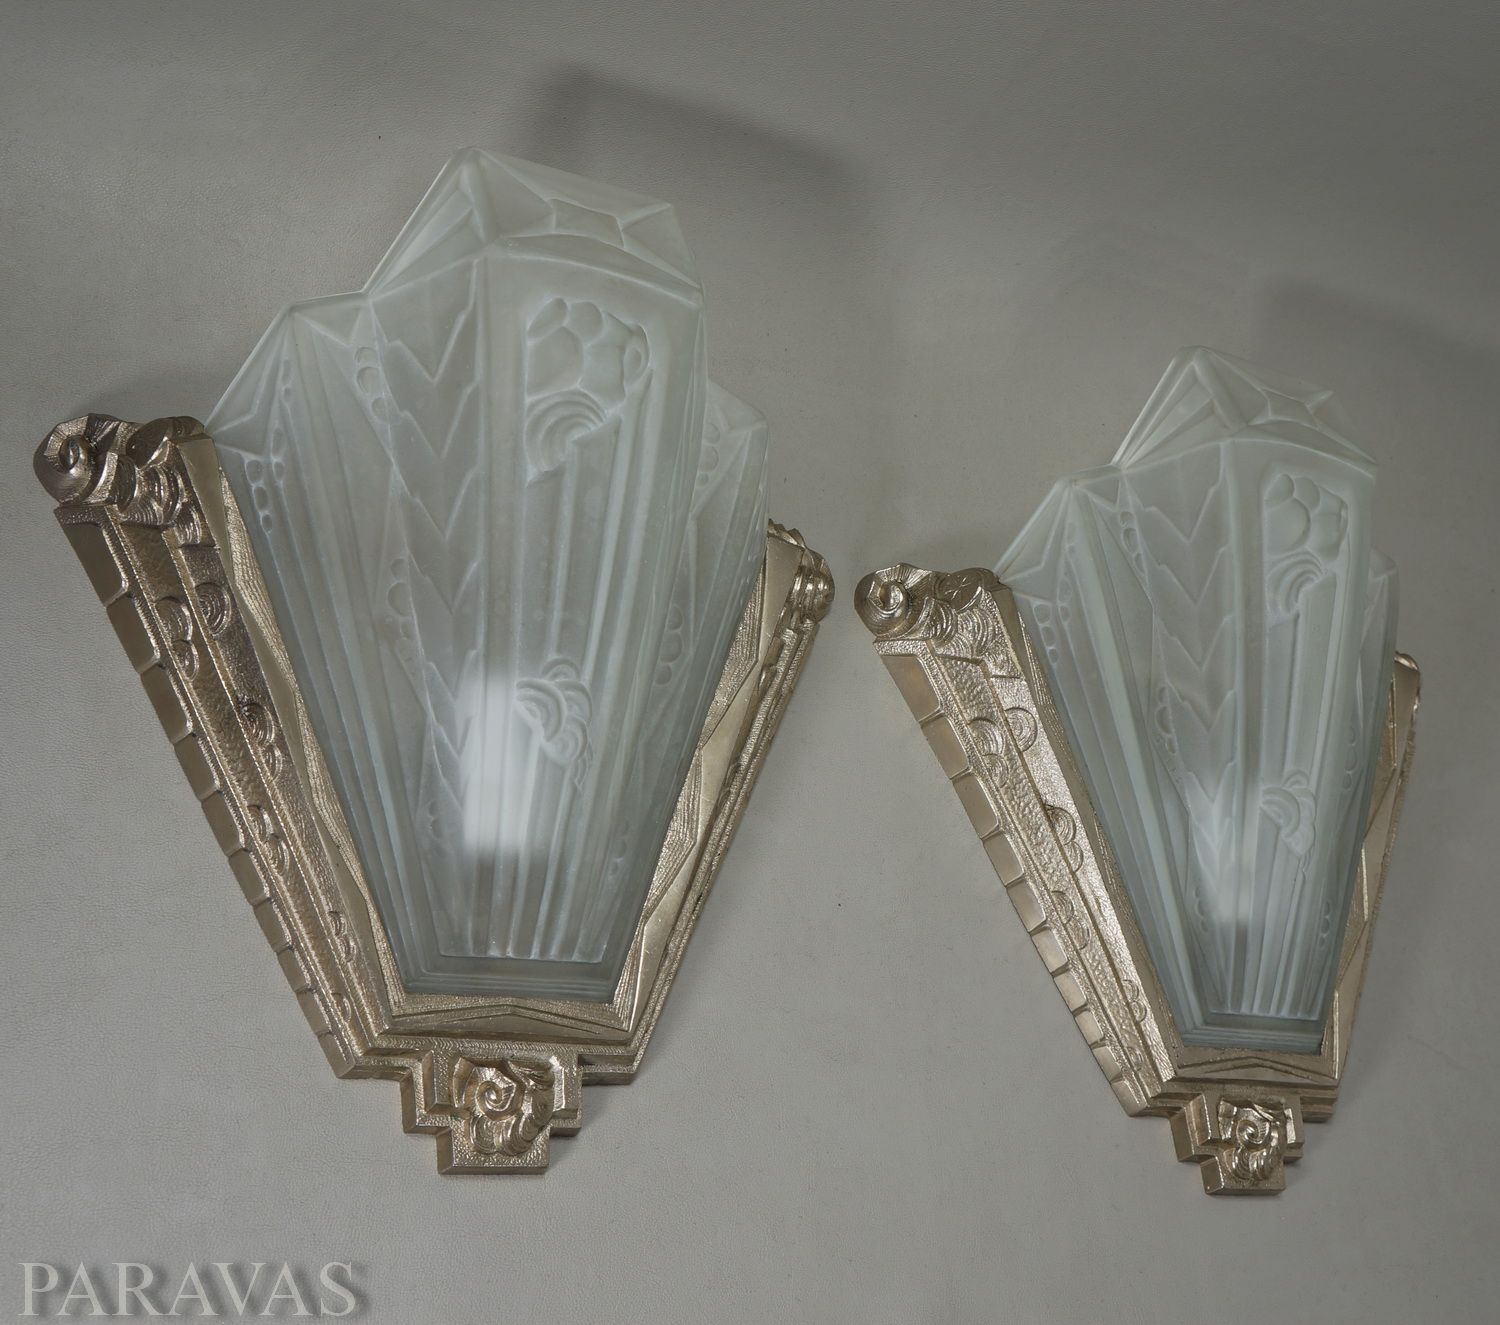 GILLES A stunning pair of French art deco wall sconces by la